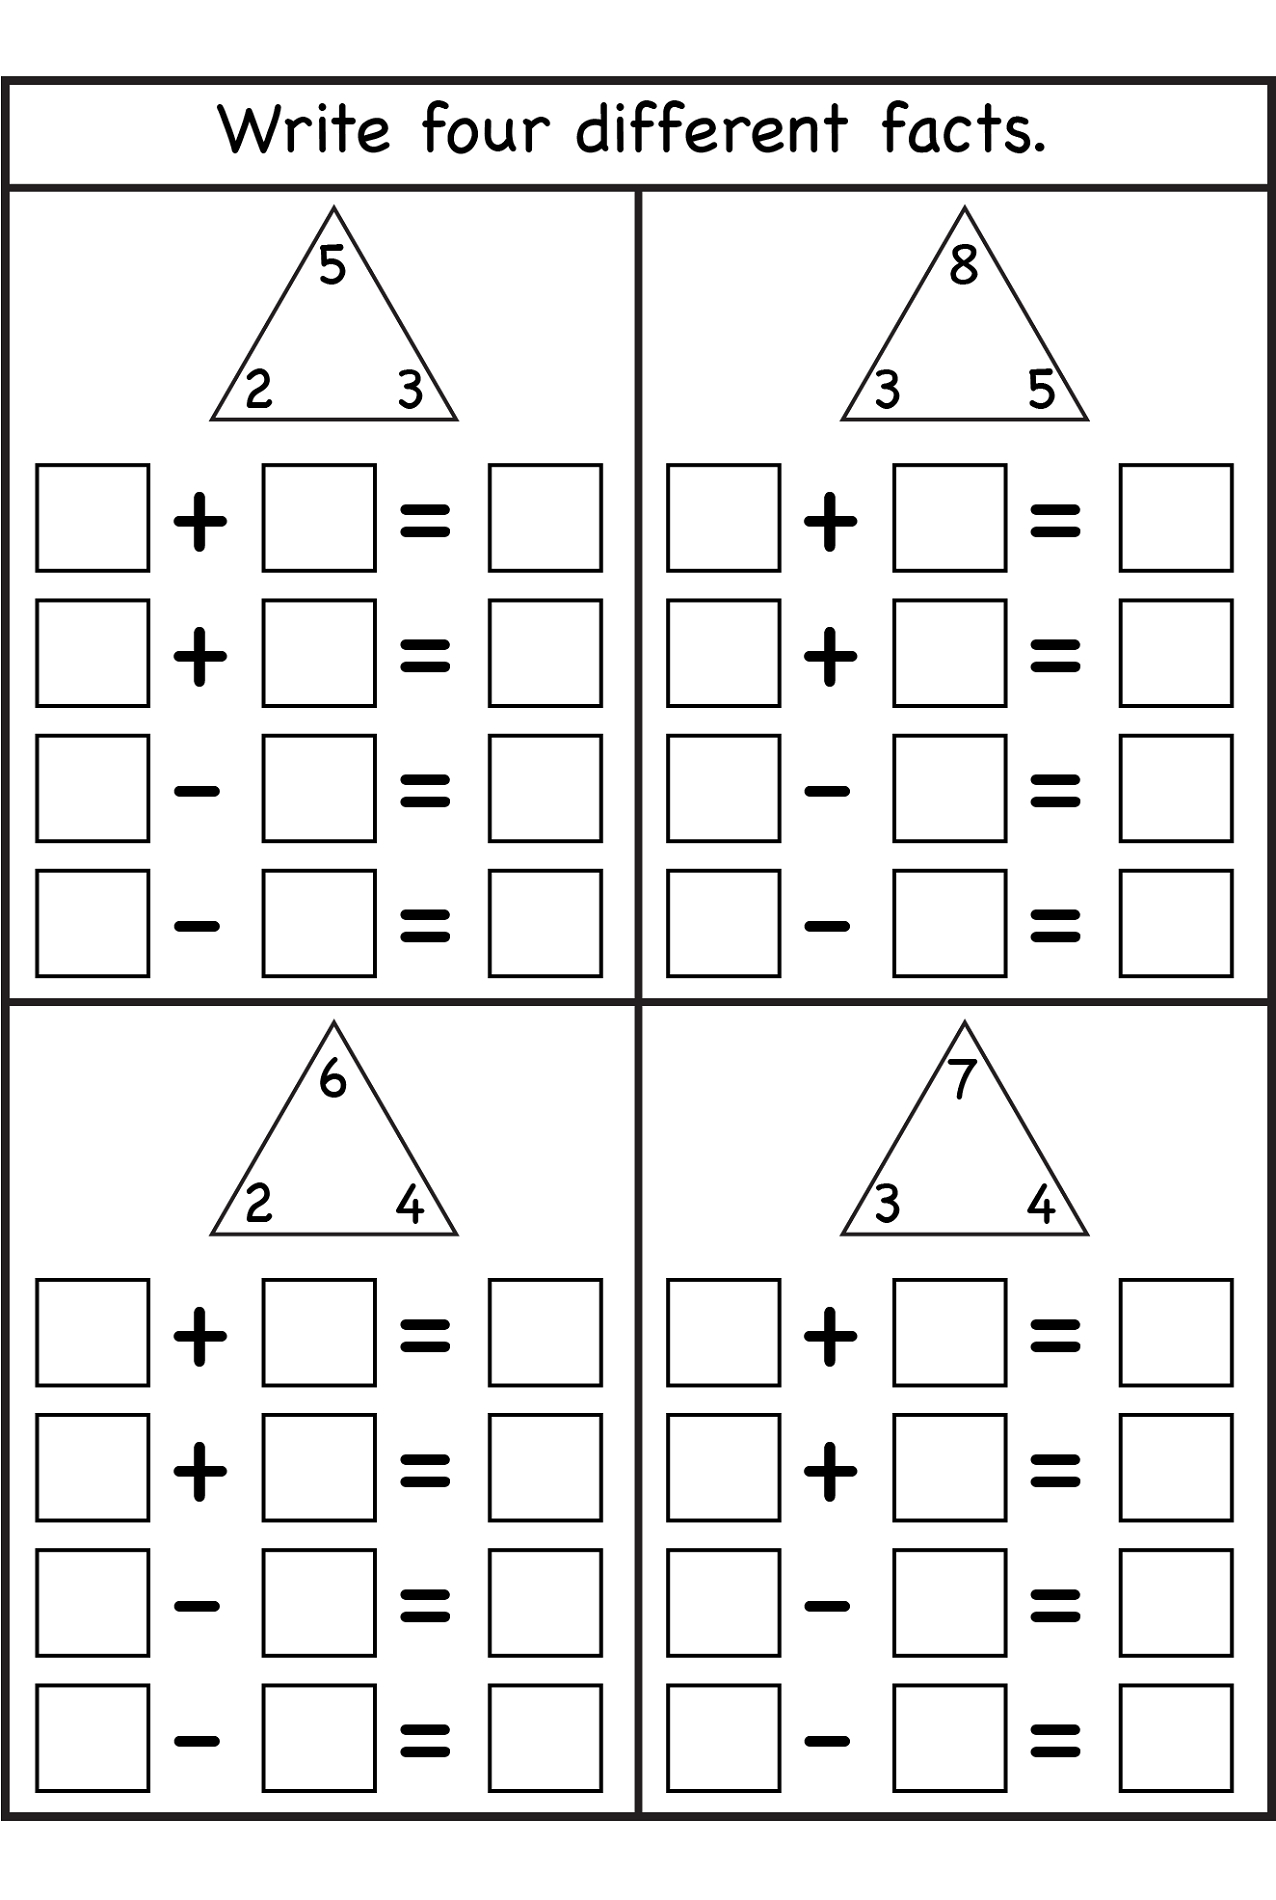 Triangle Division Fact Family Worksheet